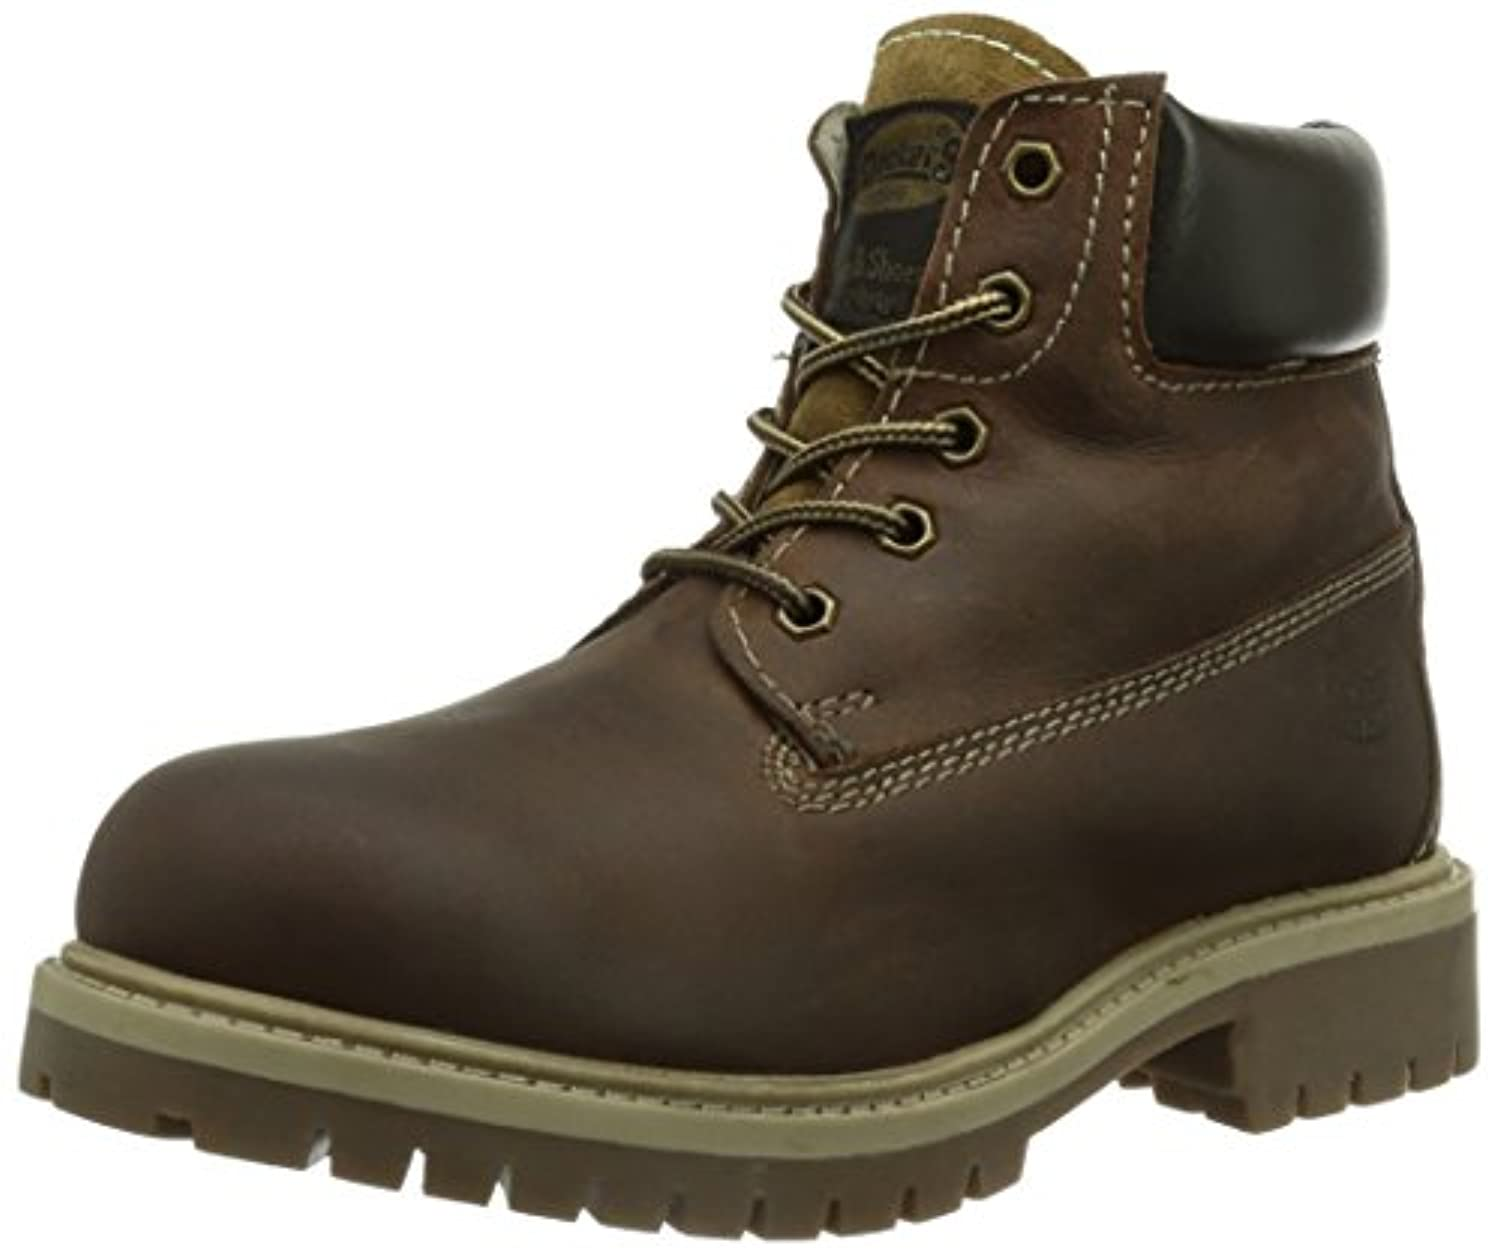 Dockers 358402-007636 , Unisex-Child Boots, Brown (Braun 636), 1 UK